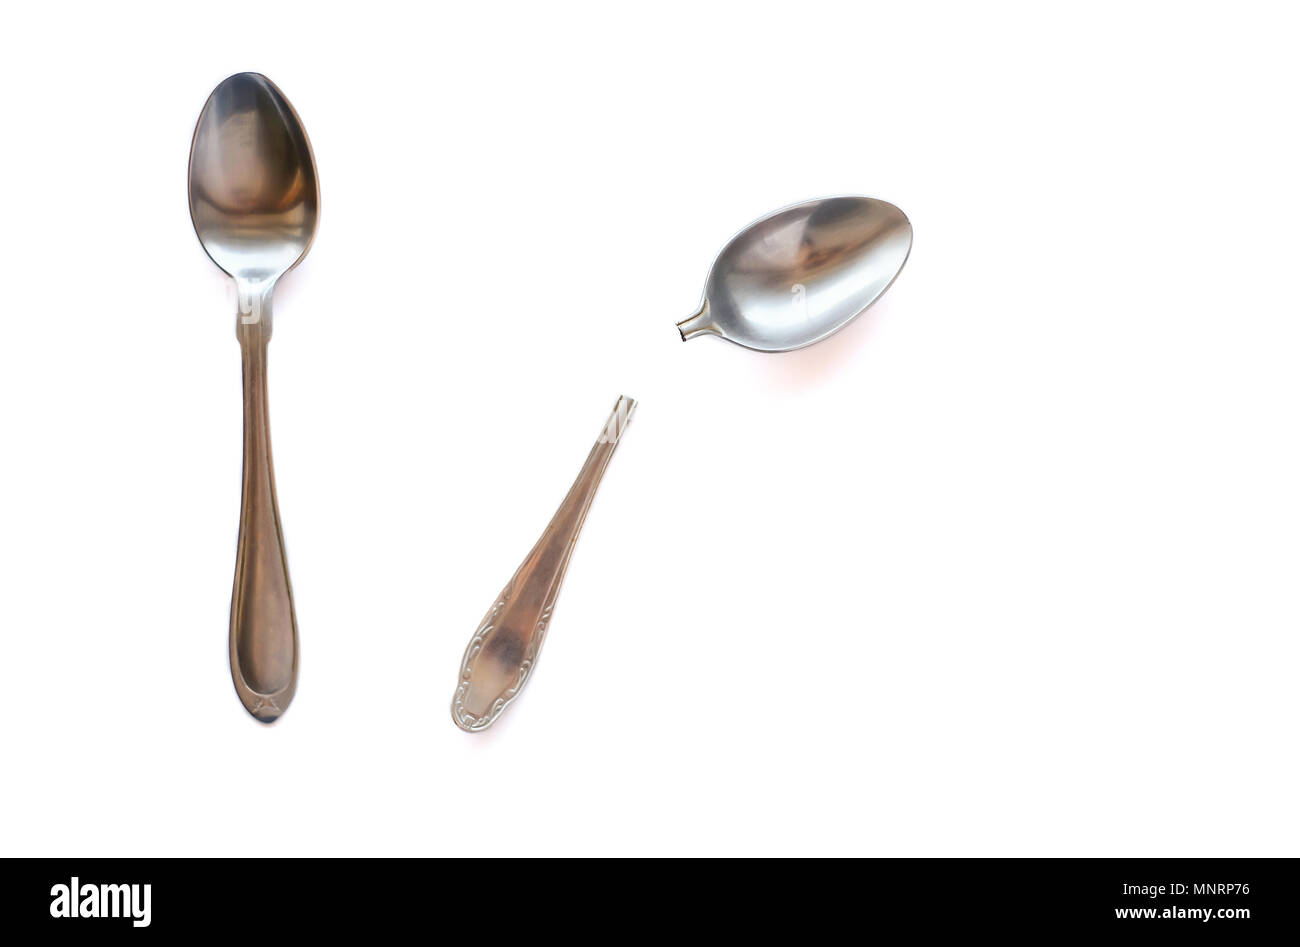 Two metal teaspoons - broken in half and serviceable on a white background. The concept of individuality in society and the family. - Stock Image